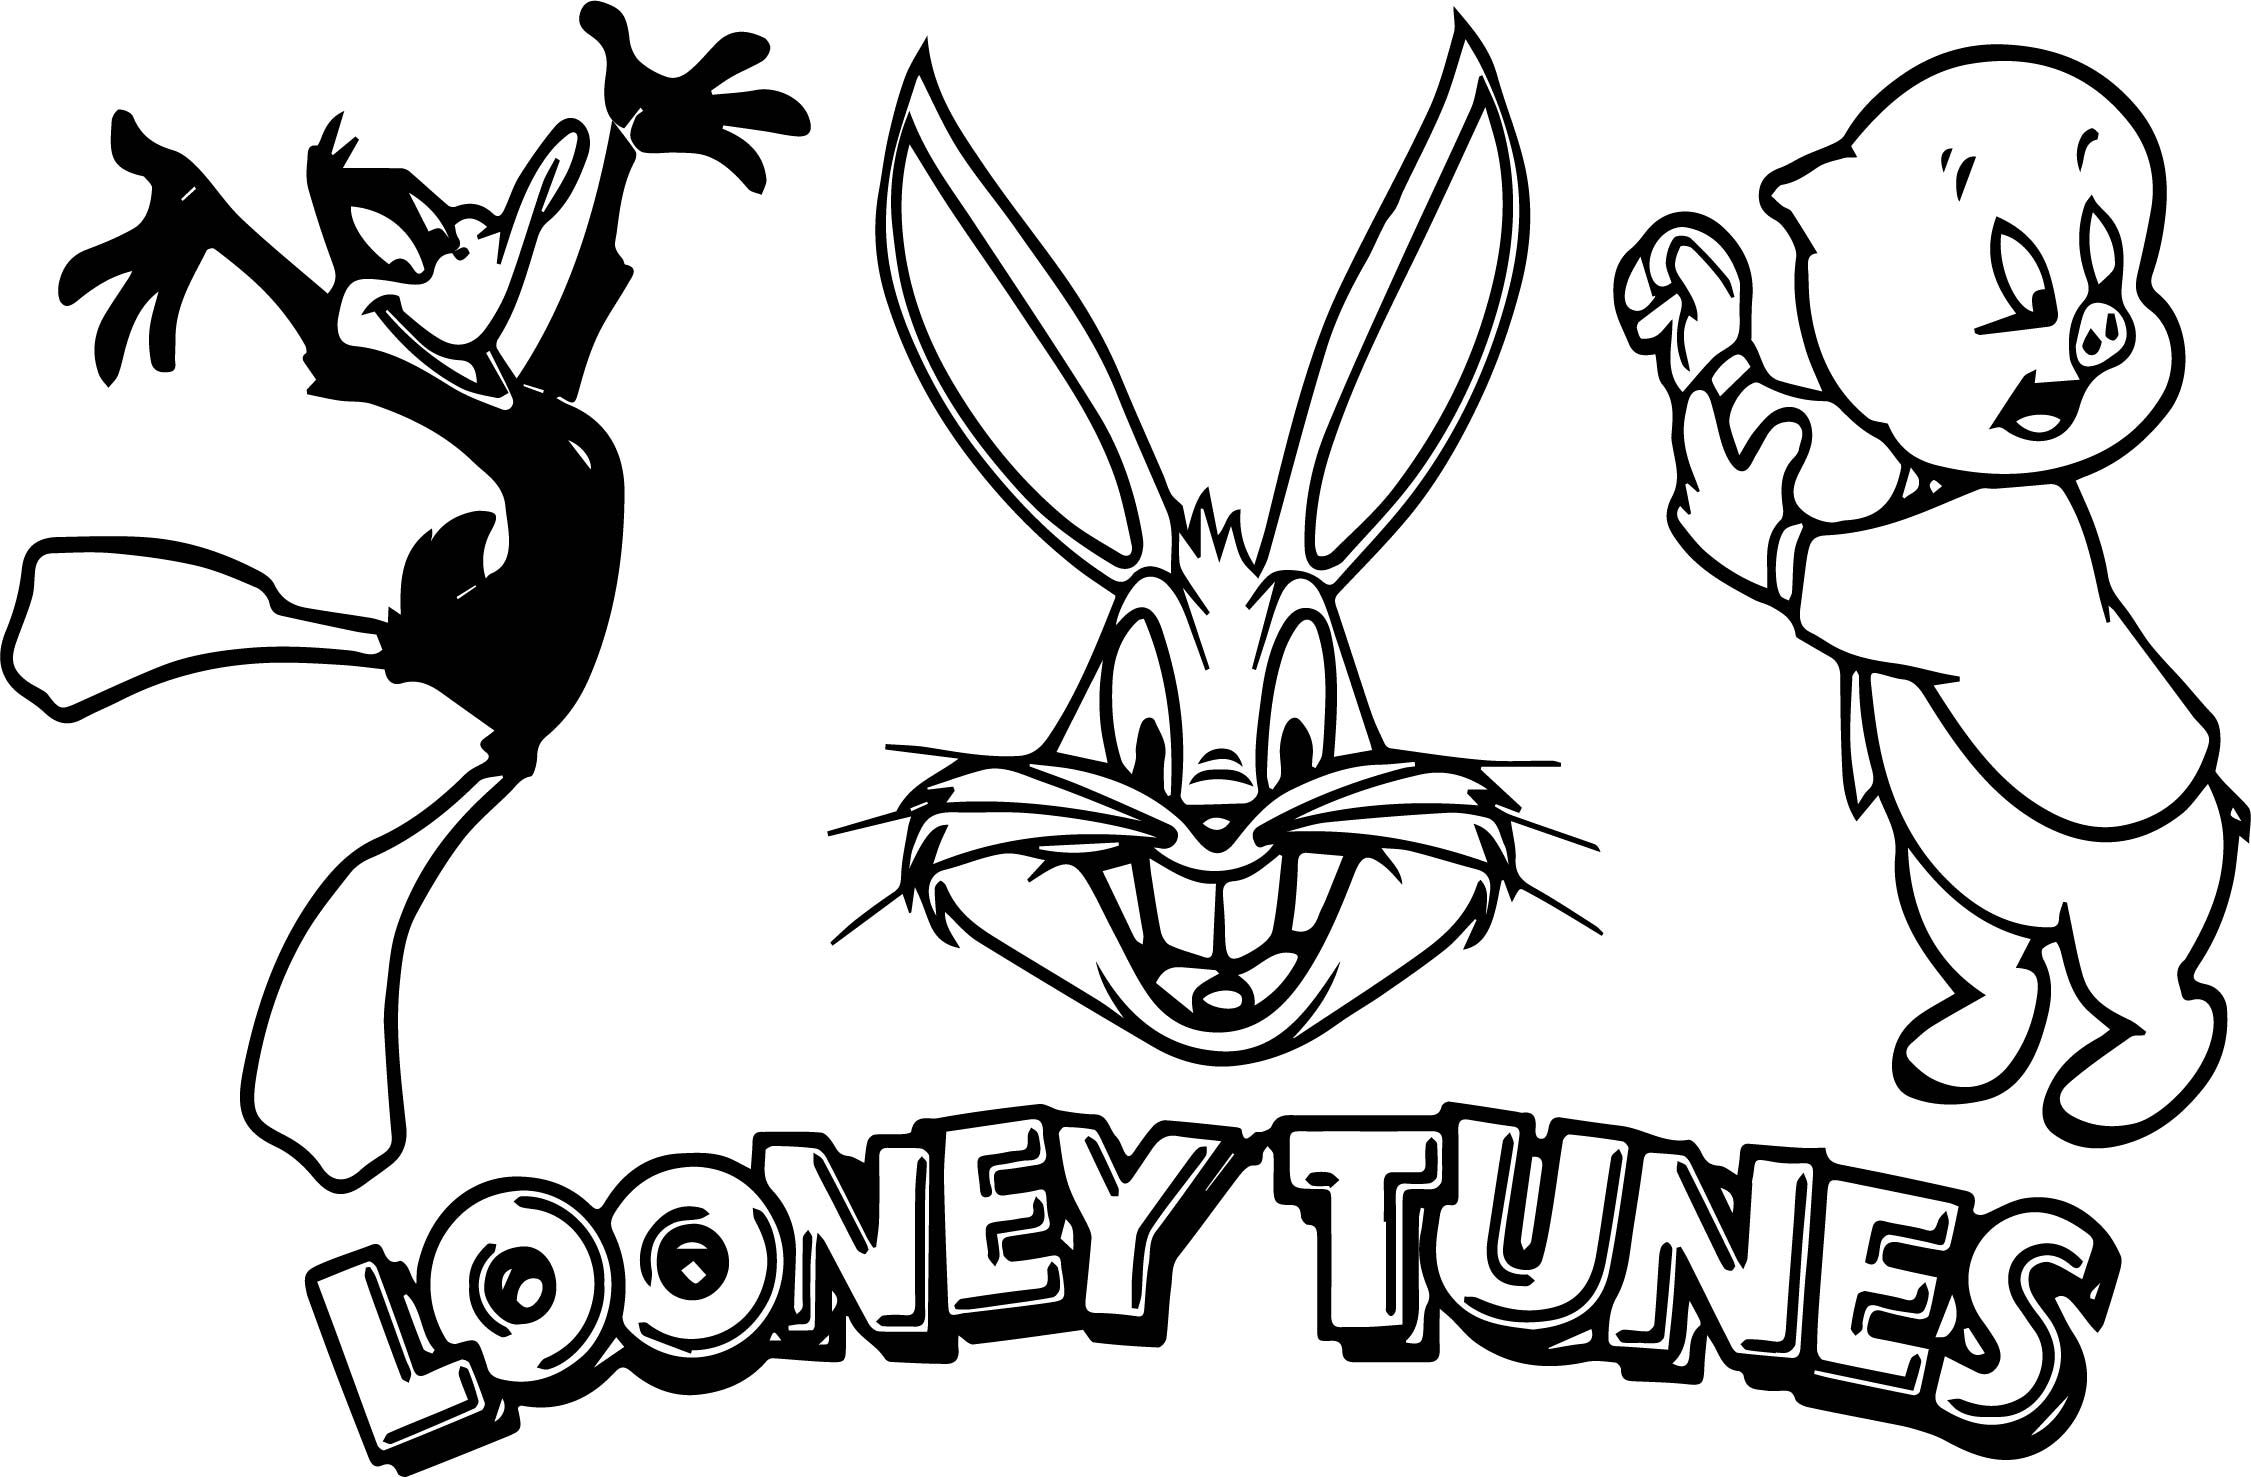 Three Character The Looney Tunes Coloring Page Looney Tunes Coloring Pages Looney